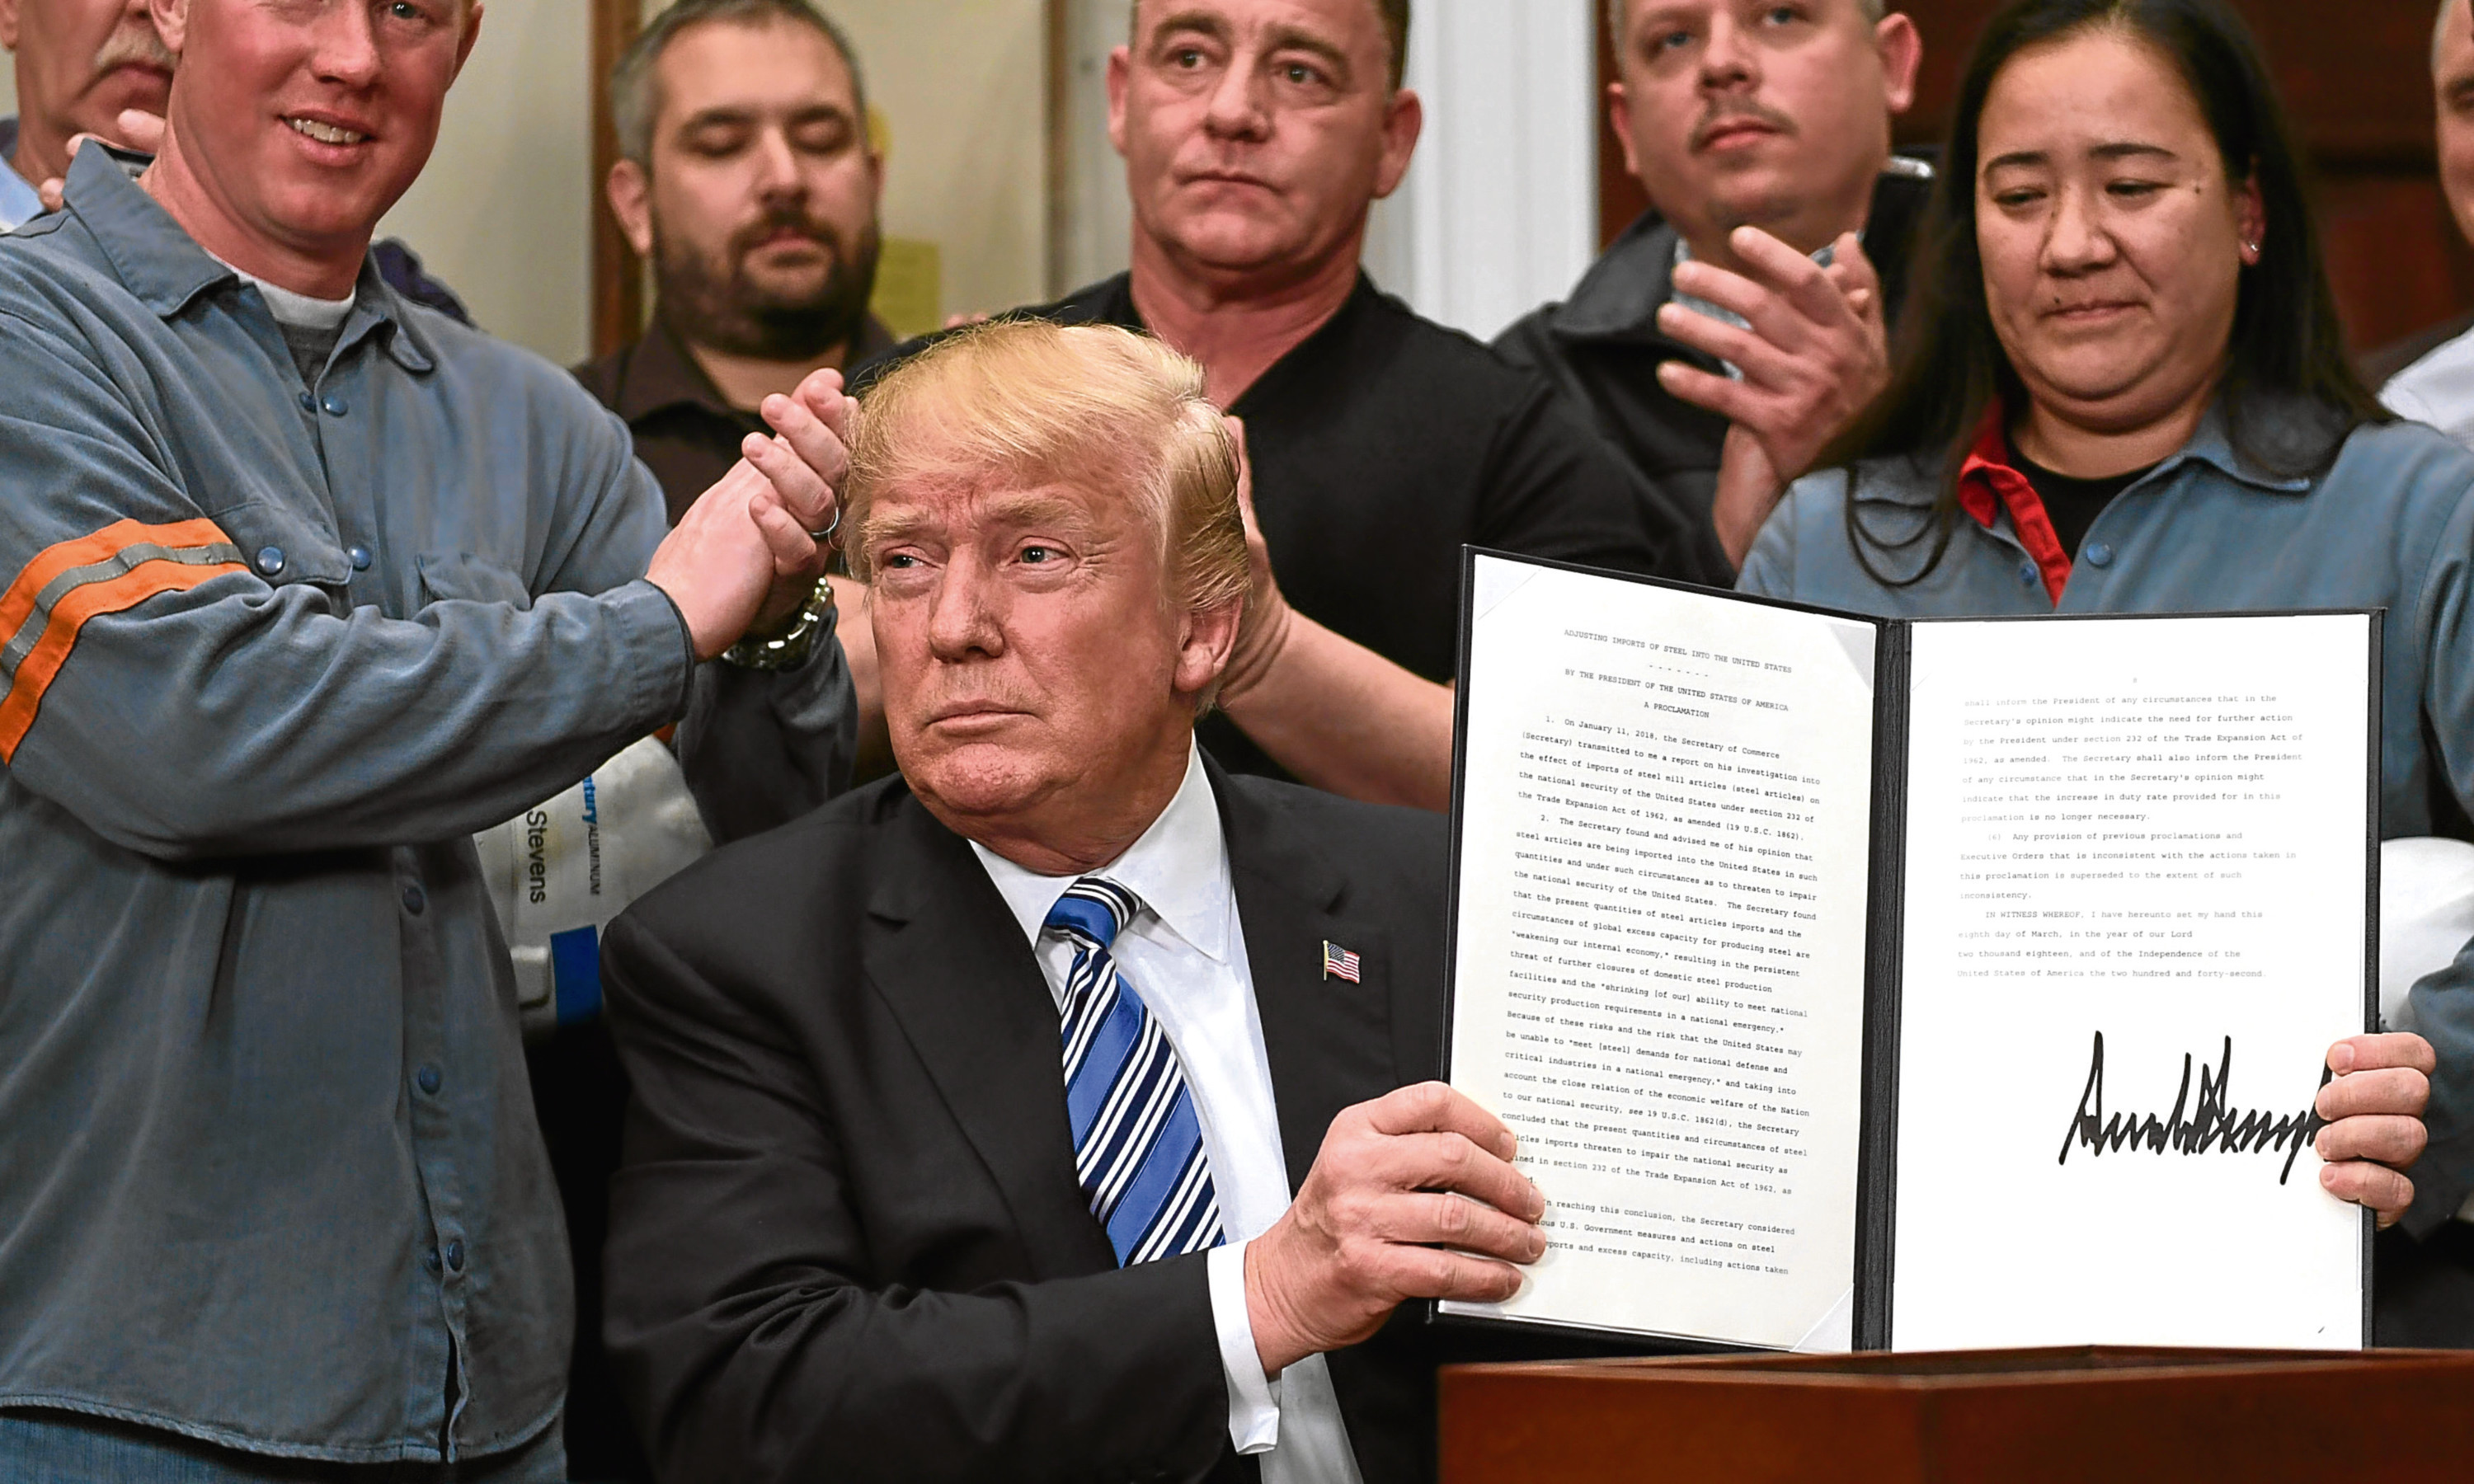 US President Donald Trump signs into law new tariffs on the import into the US of steel and aluminum.